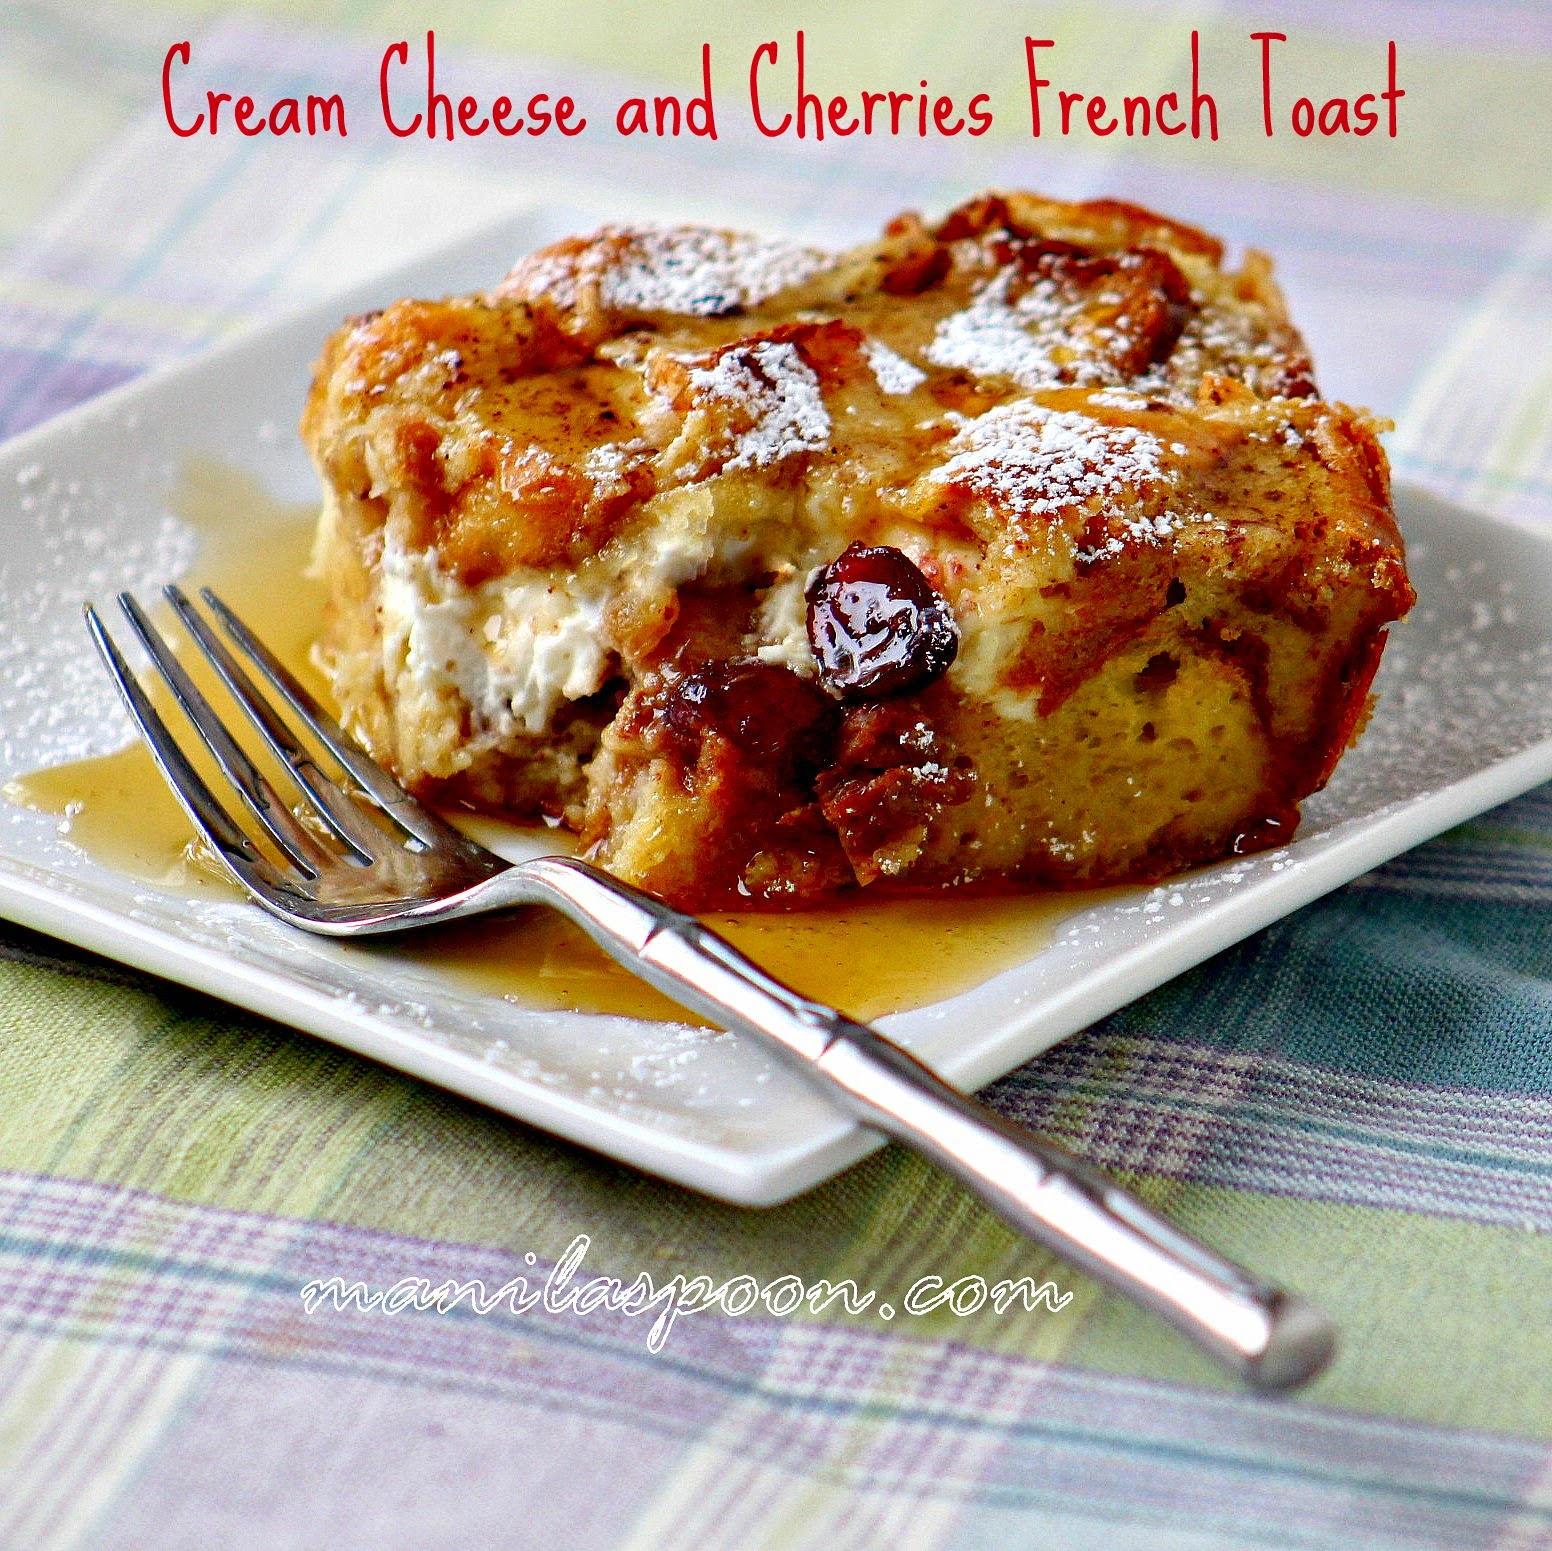 Dried cherries or cranberries, crunchy walnuts plus yummy cream cheese and warmed up maple syrup make this a fantastic breakfast or brunch dish - Cream Cheese and Cherries French Toast!